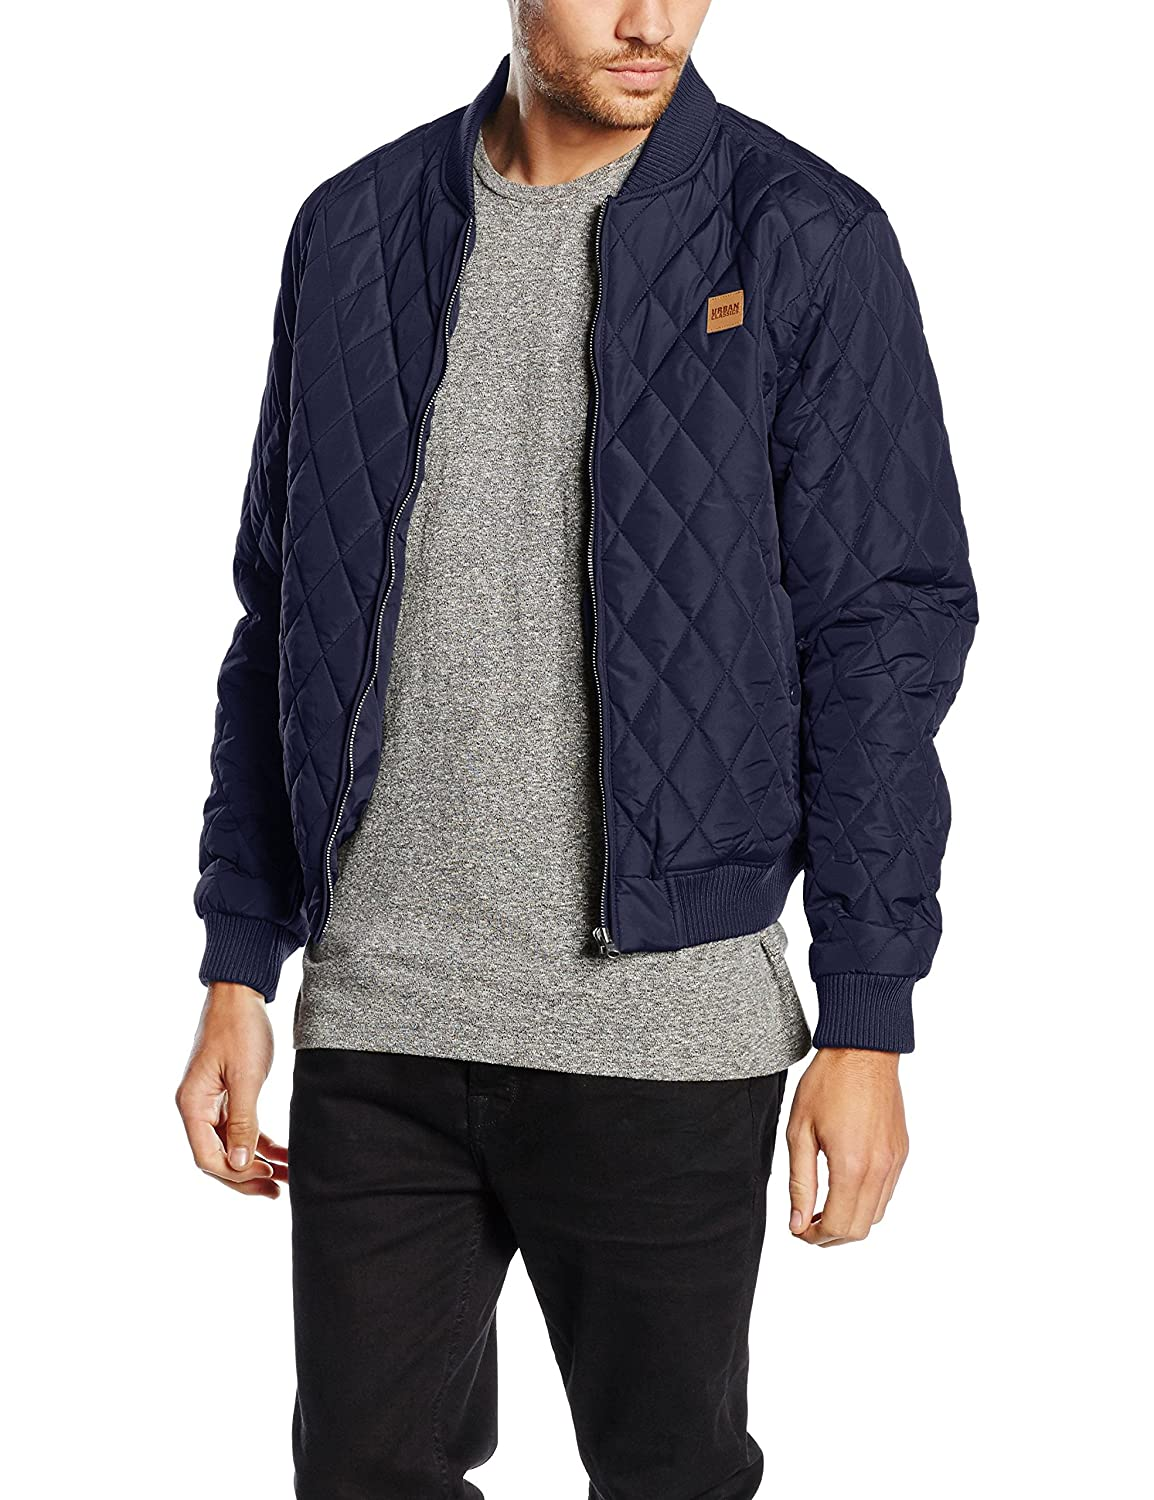 95594c75aab Fashionable quilted jacket by URBAN CLASSICS in bomber jacket style.  Lightweight nylon jacket with a diamond quilt look   quilted jacket